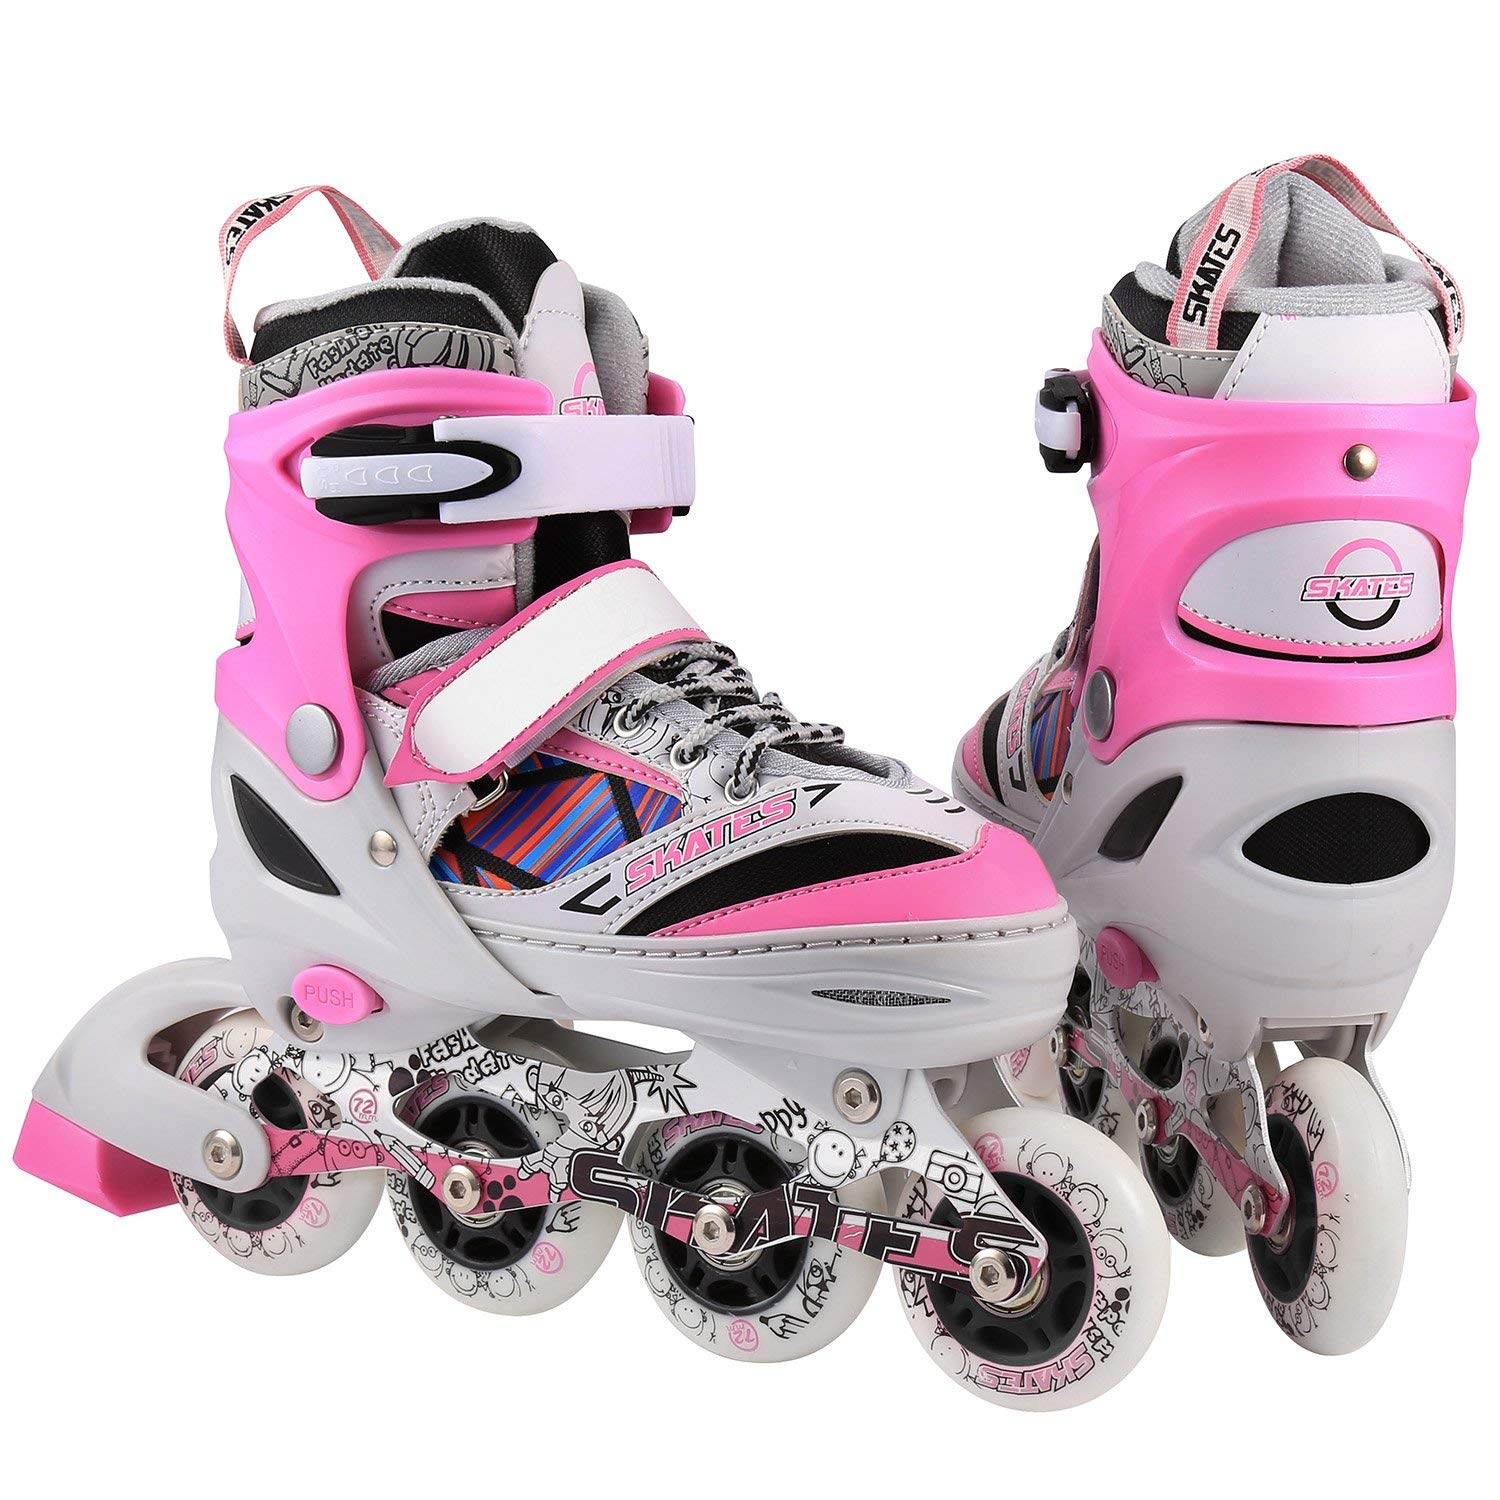 312dc2ece1d Get Quotations · ANCHEER S9 Kids Adjustable Inline Skates Rollerblades  Roller Skates for Boys/Girls/Adults Youth